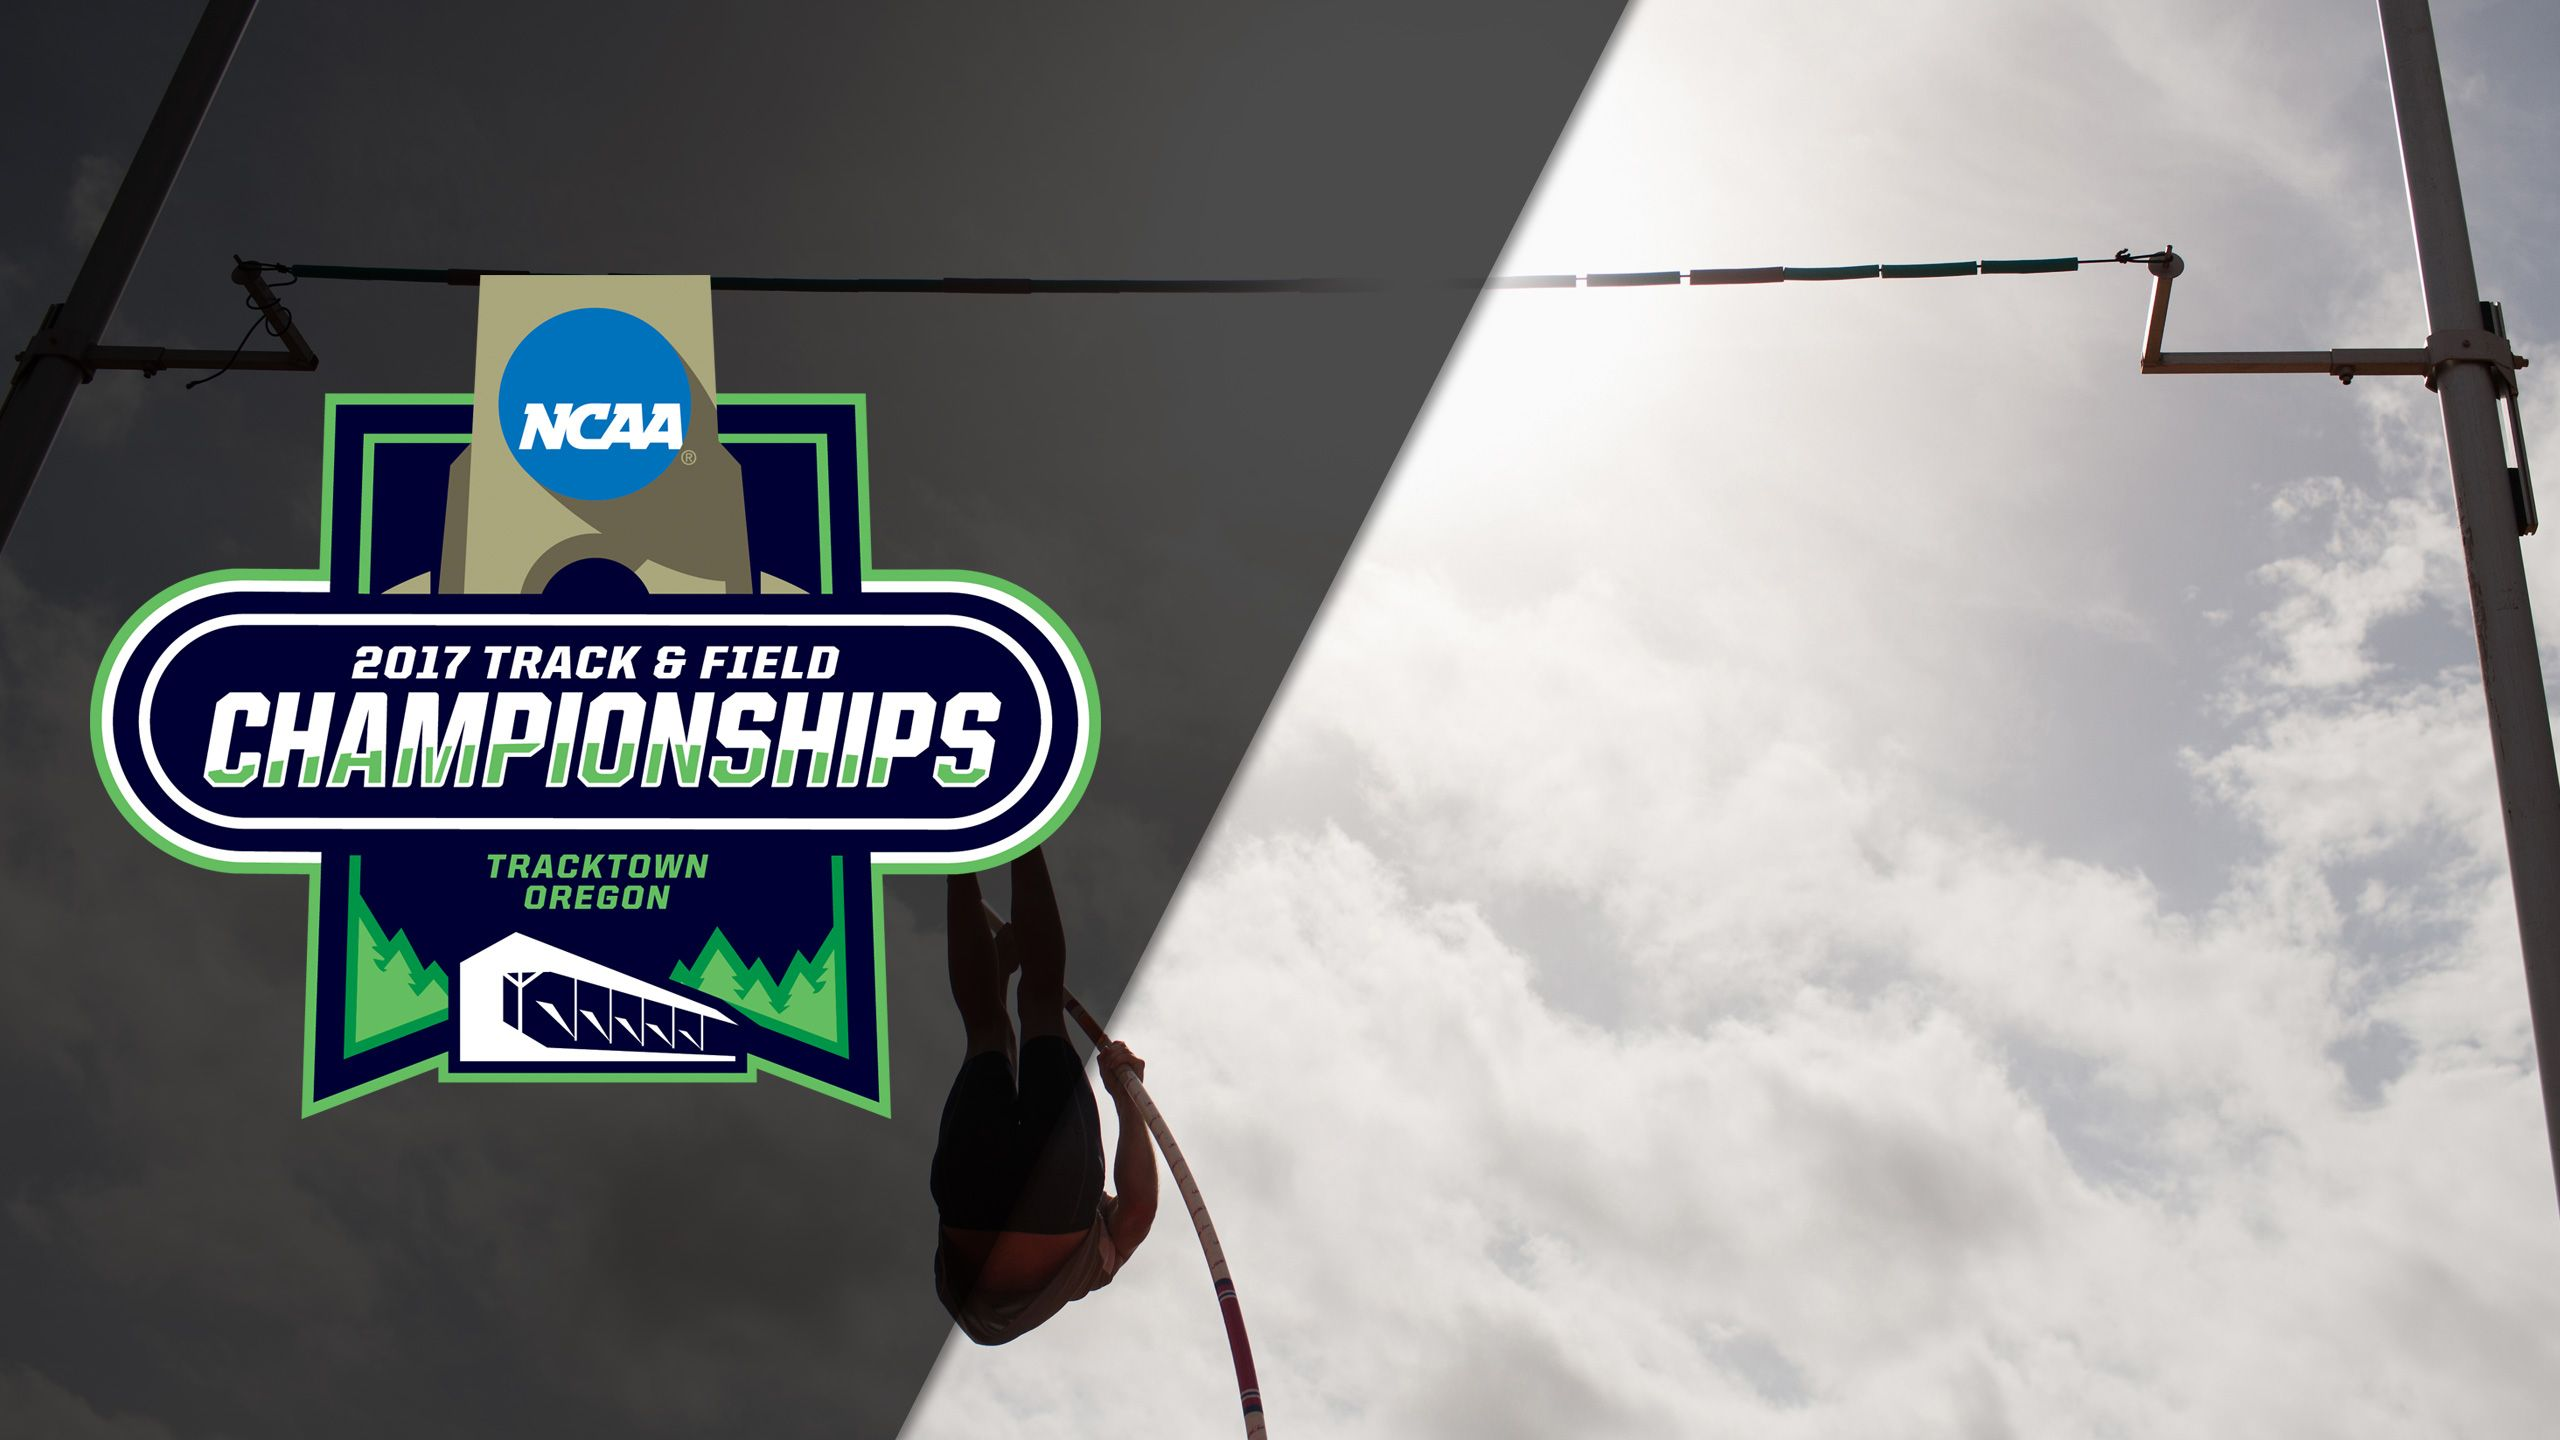 NCAA Track & Field Outdoor Championships - Decathlon: Pole Vault (Flight 2)